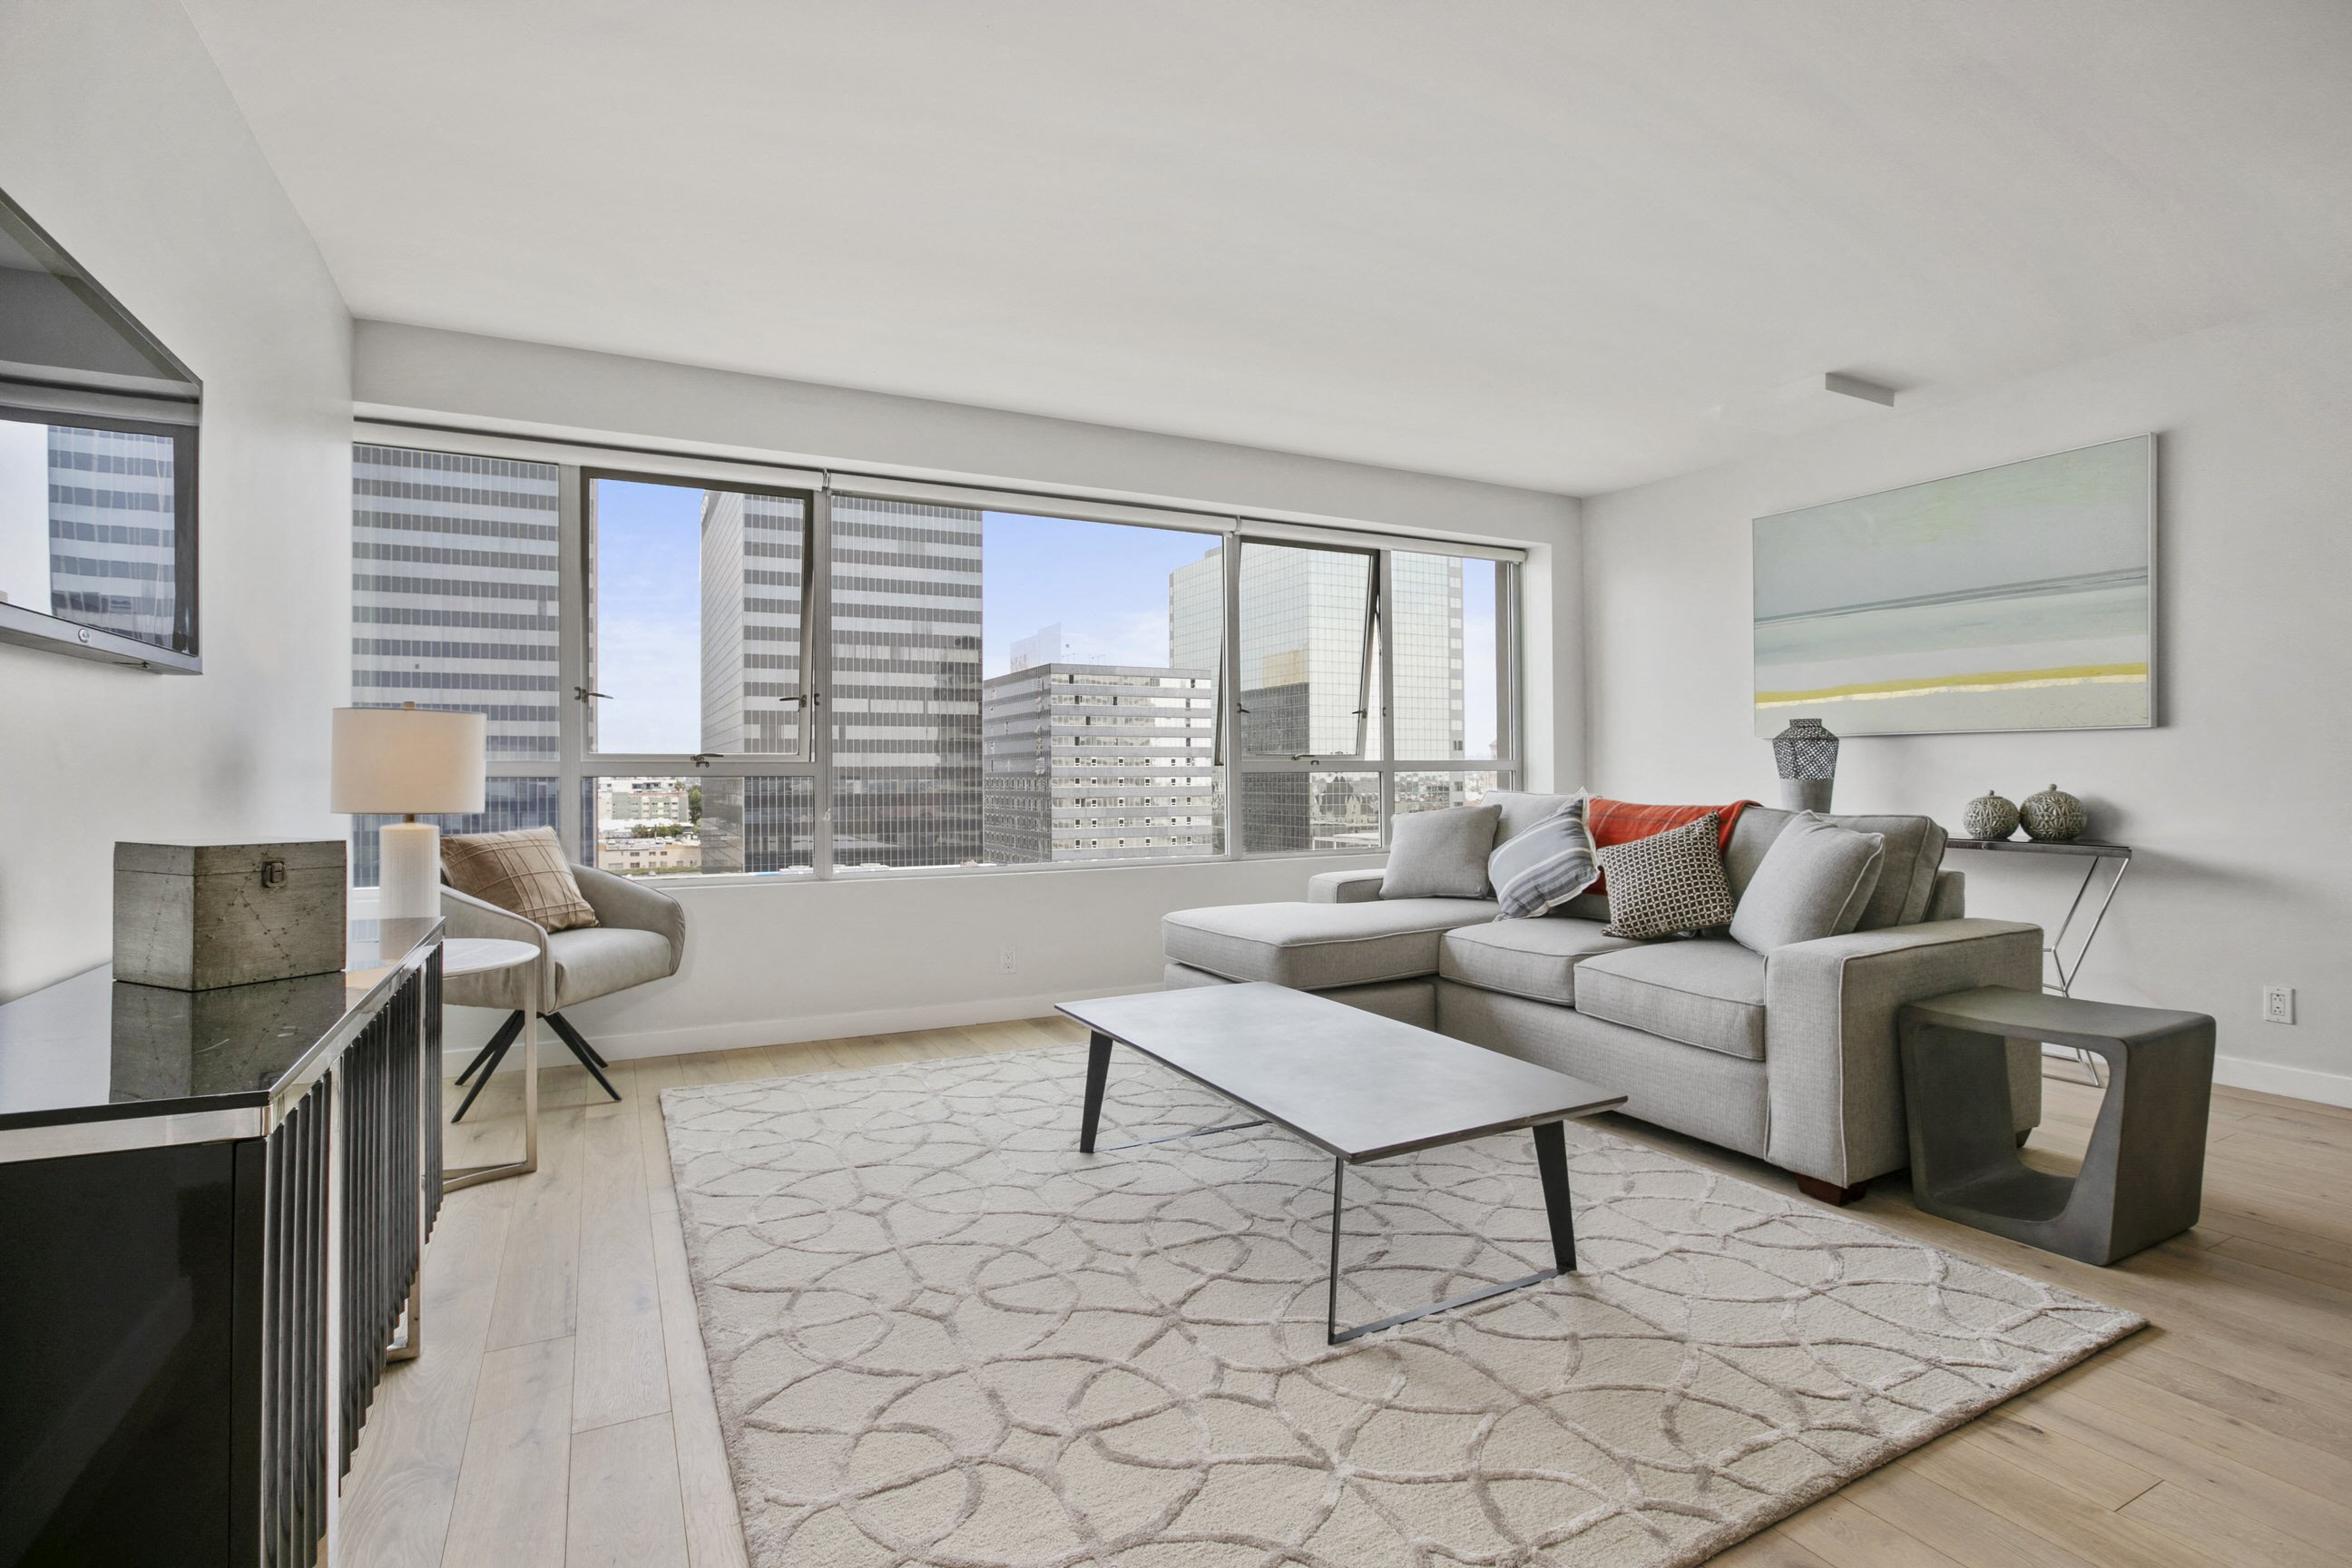 Apartments in Koreatown, CA - The View Apartments Living Room with Hardwood-Style Flooring and Large Windows Providing Skyline Views